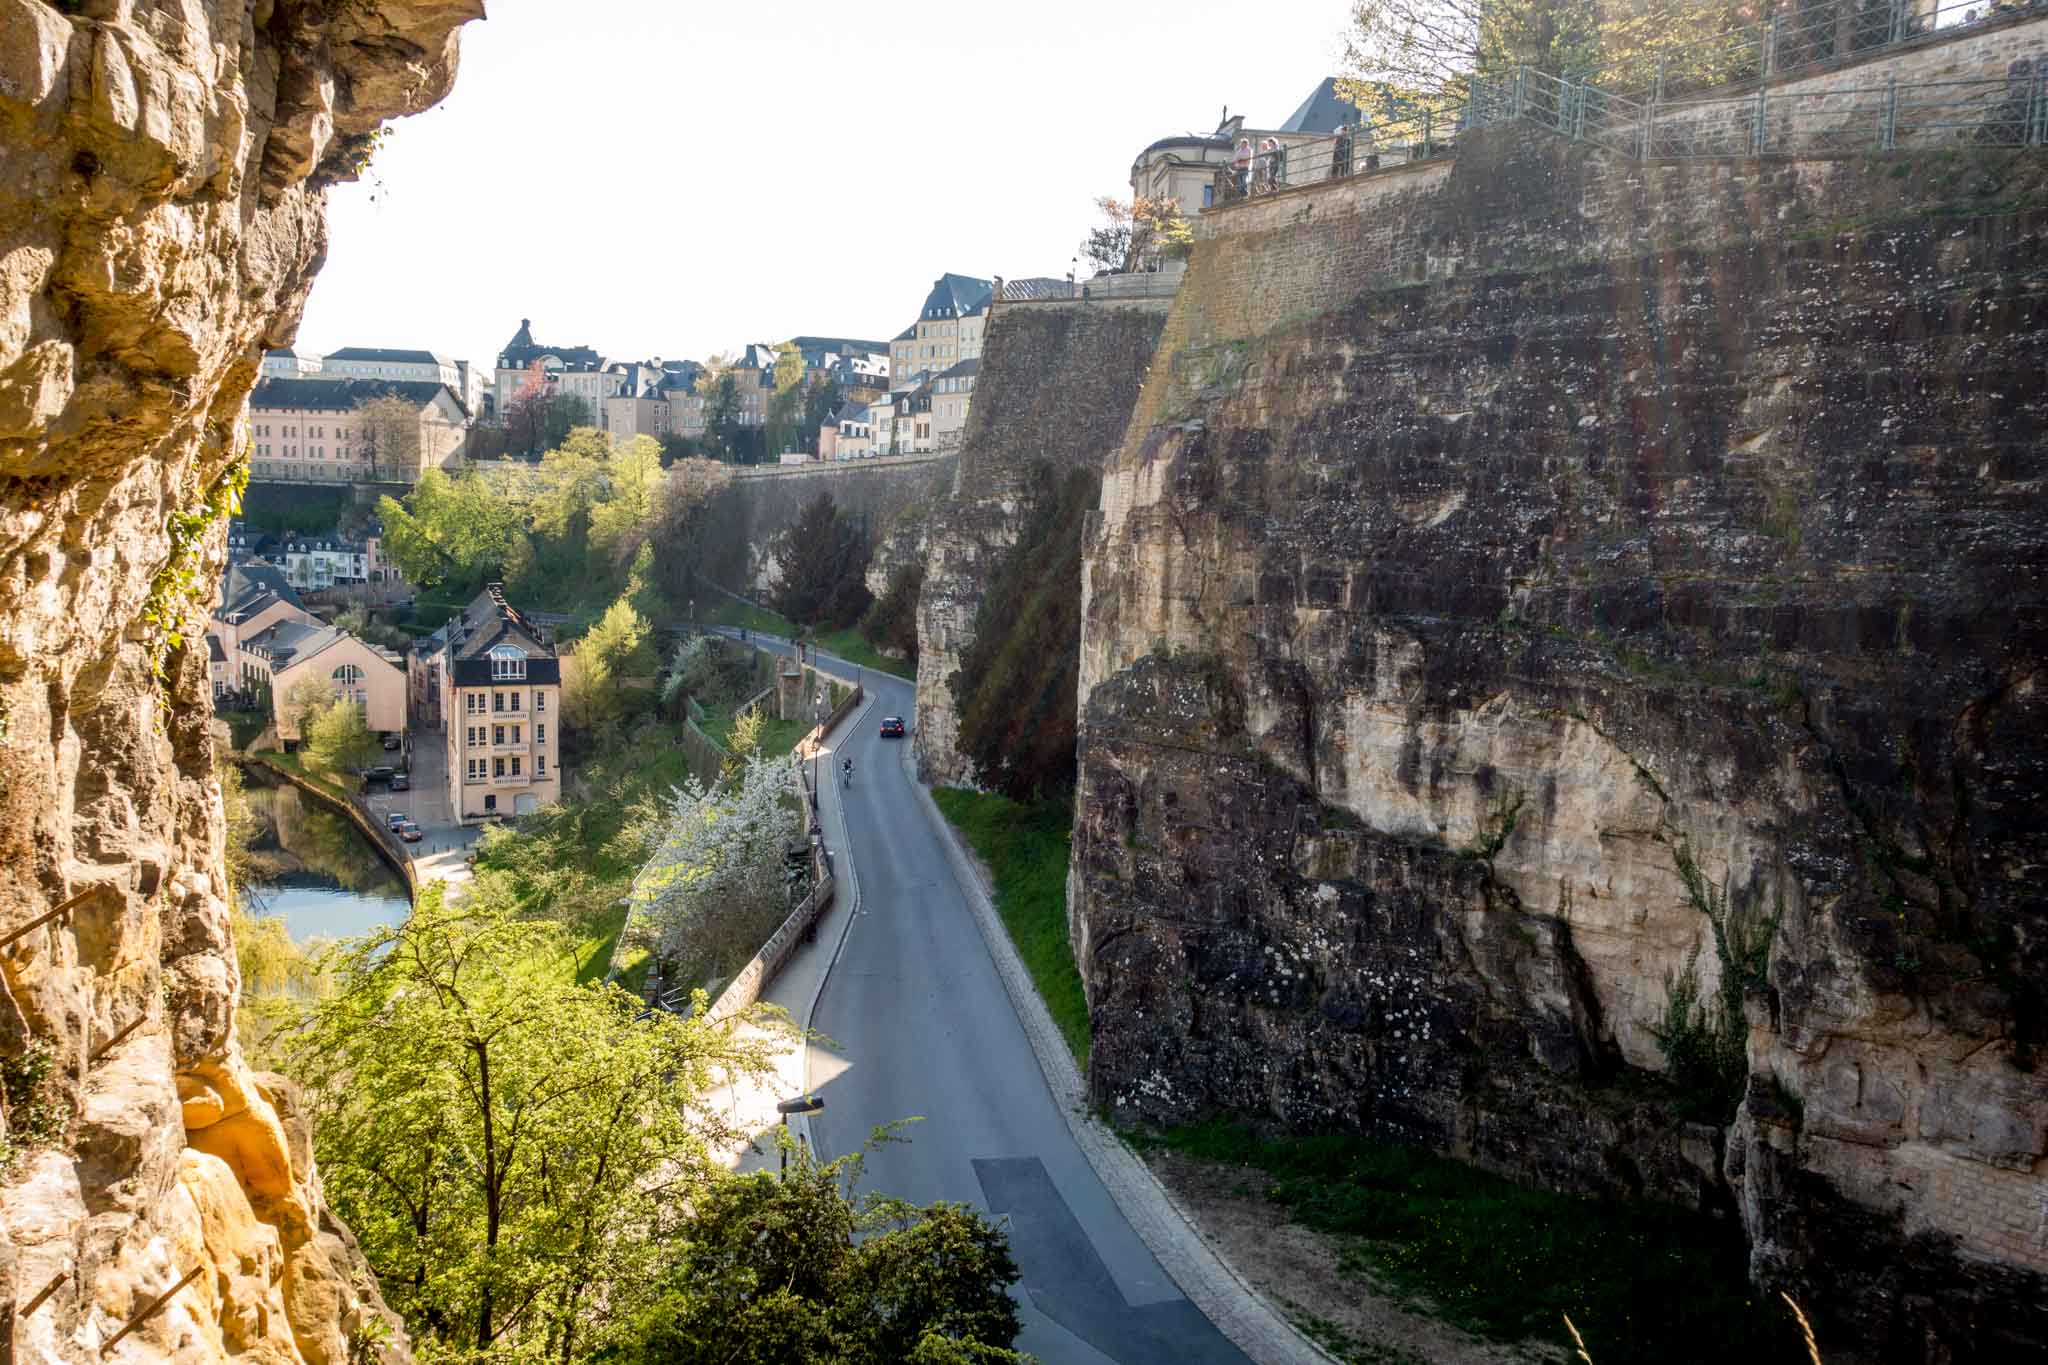 Looking out from the Casemates du Bock over Luxembourg City. These old tunnels are one of the more unique Luxembourg attractions.